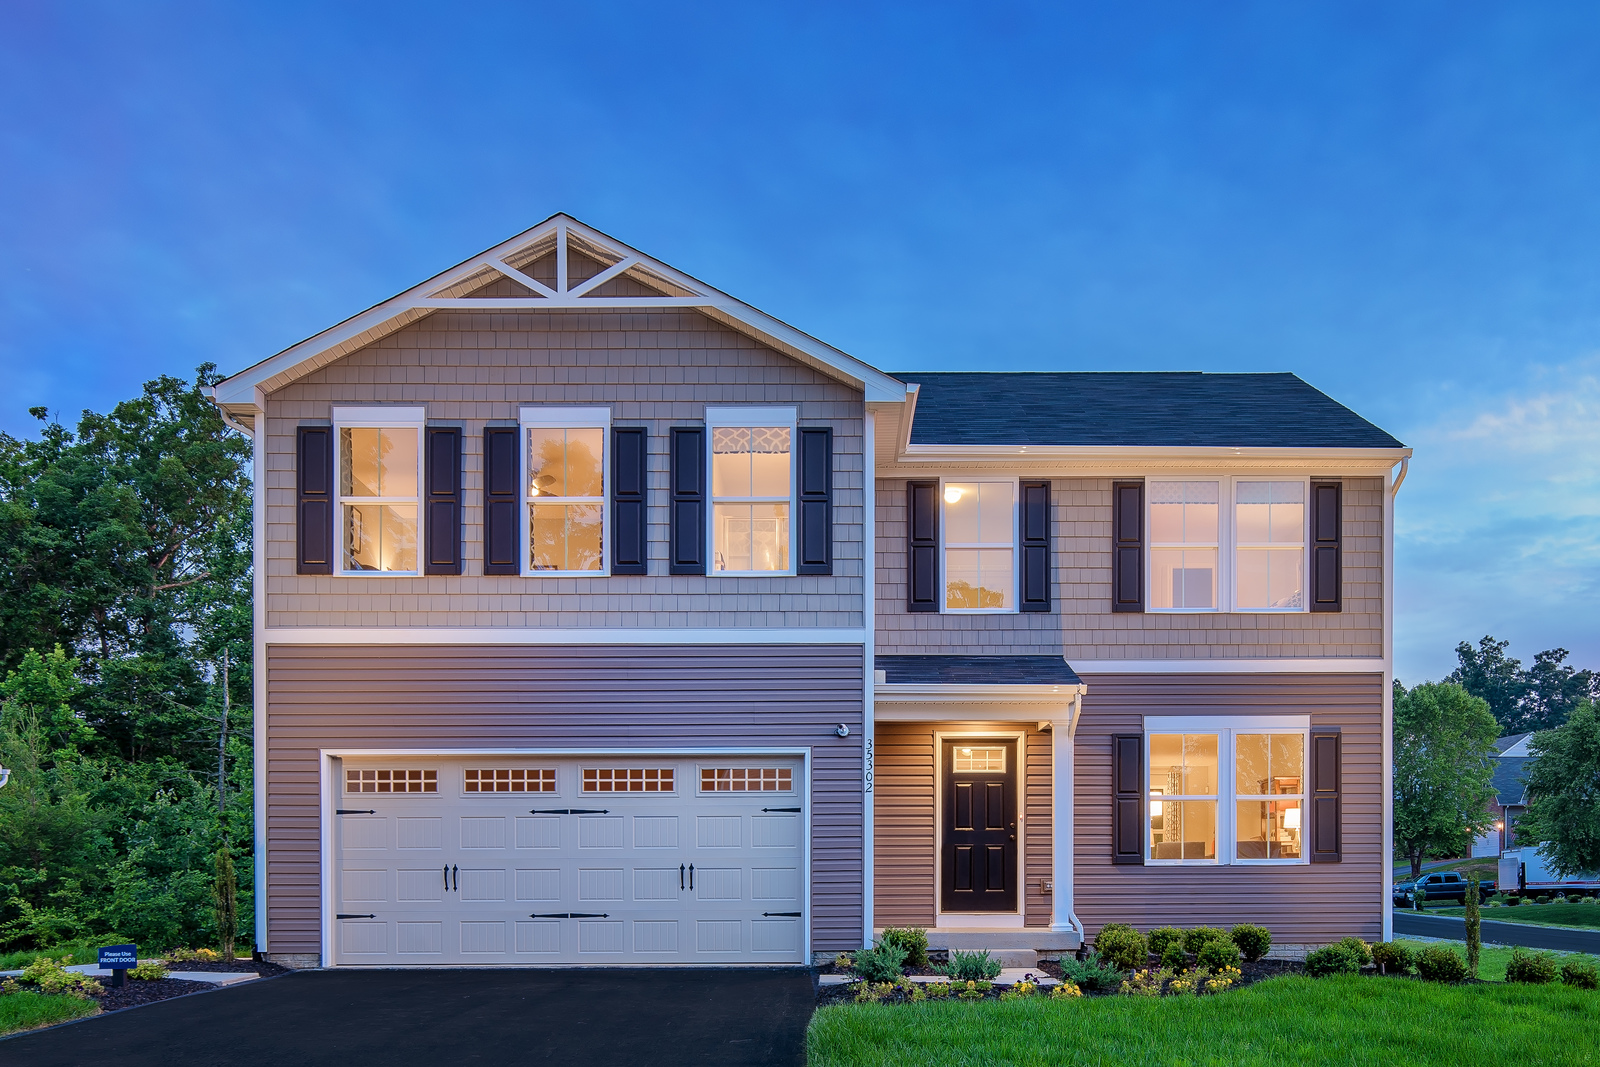 New Homes For Sale At Holly Farms In Lyman Sc Within The